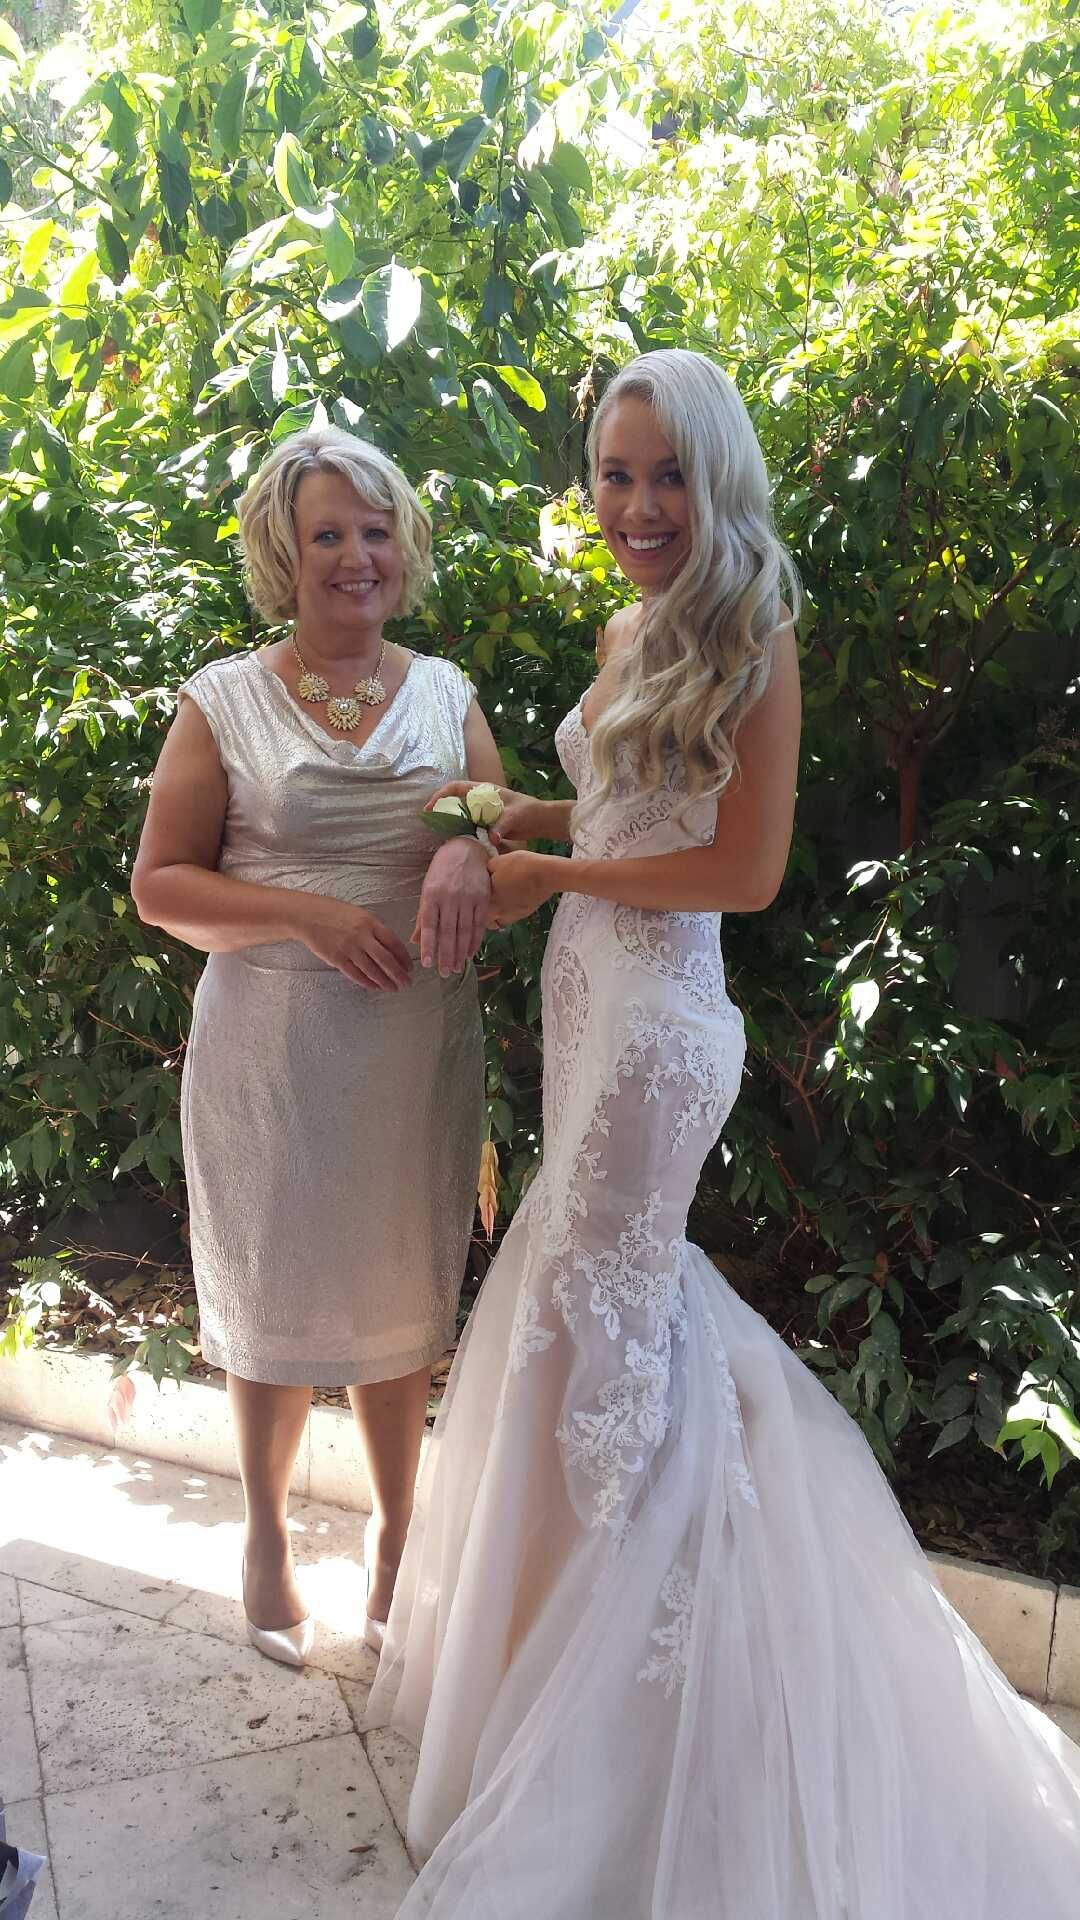 Steven khalil custom made size 6 wedding dress weddings and wedding steven khalil custom made second hand wedding dress on sale ombrellifo Gallery